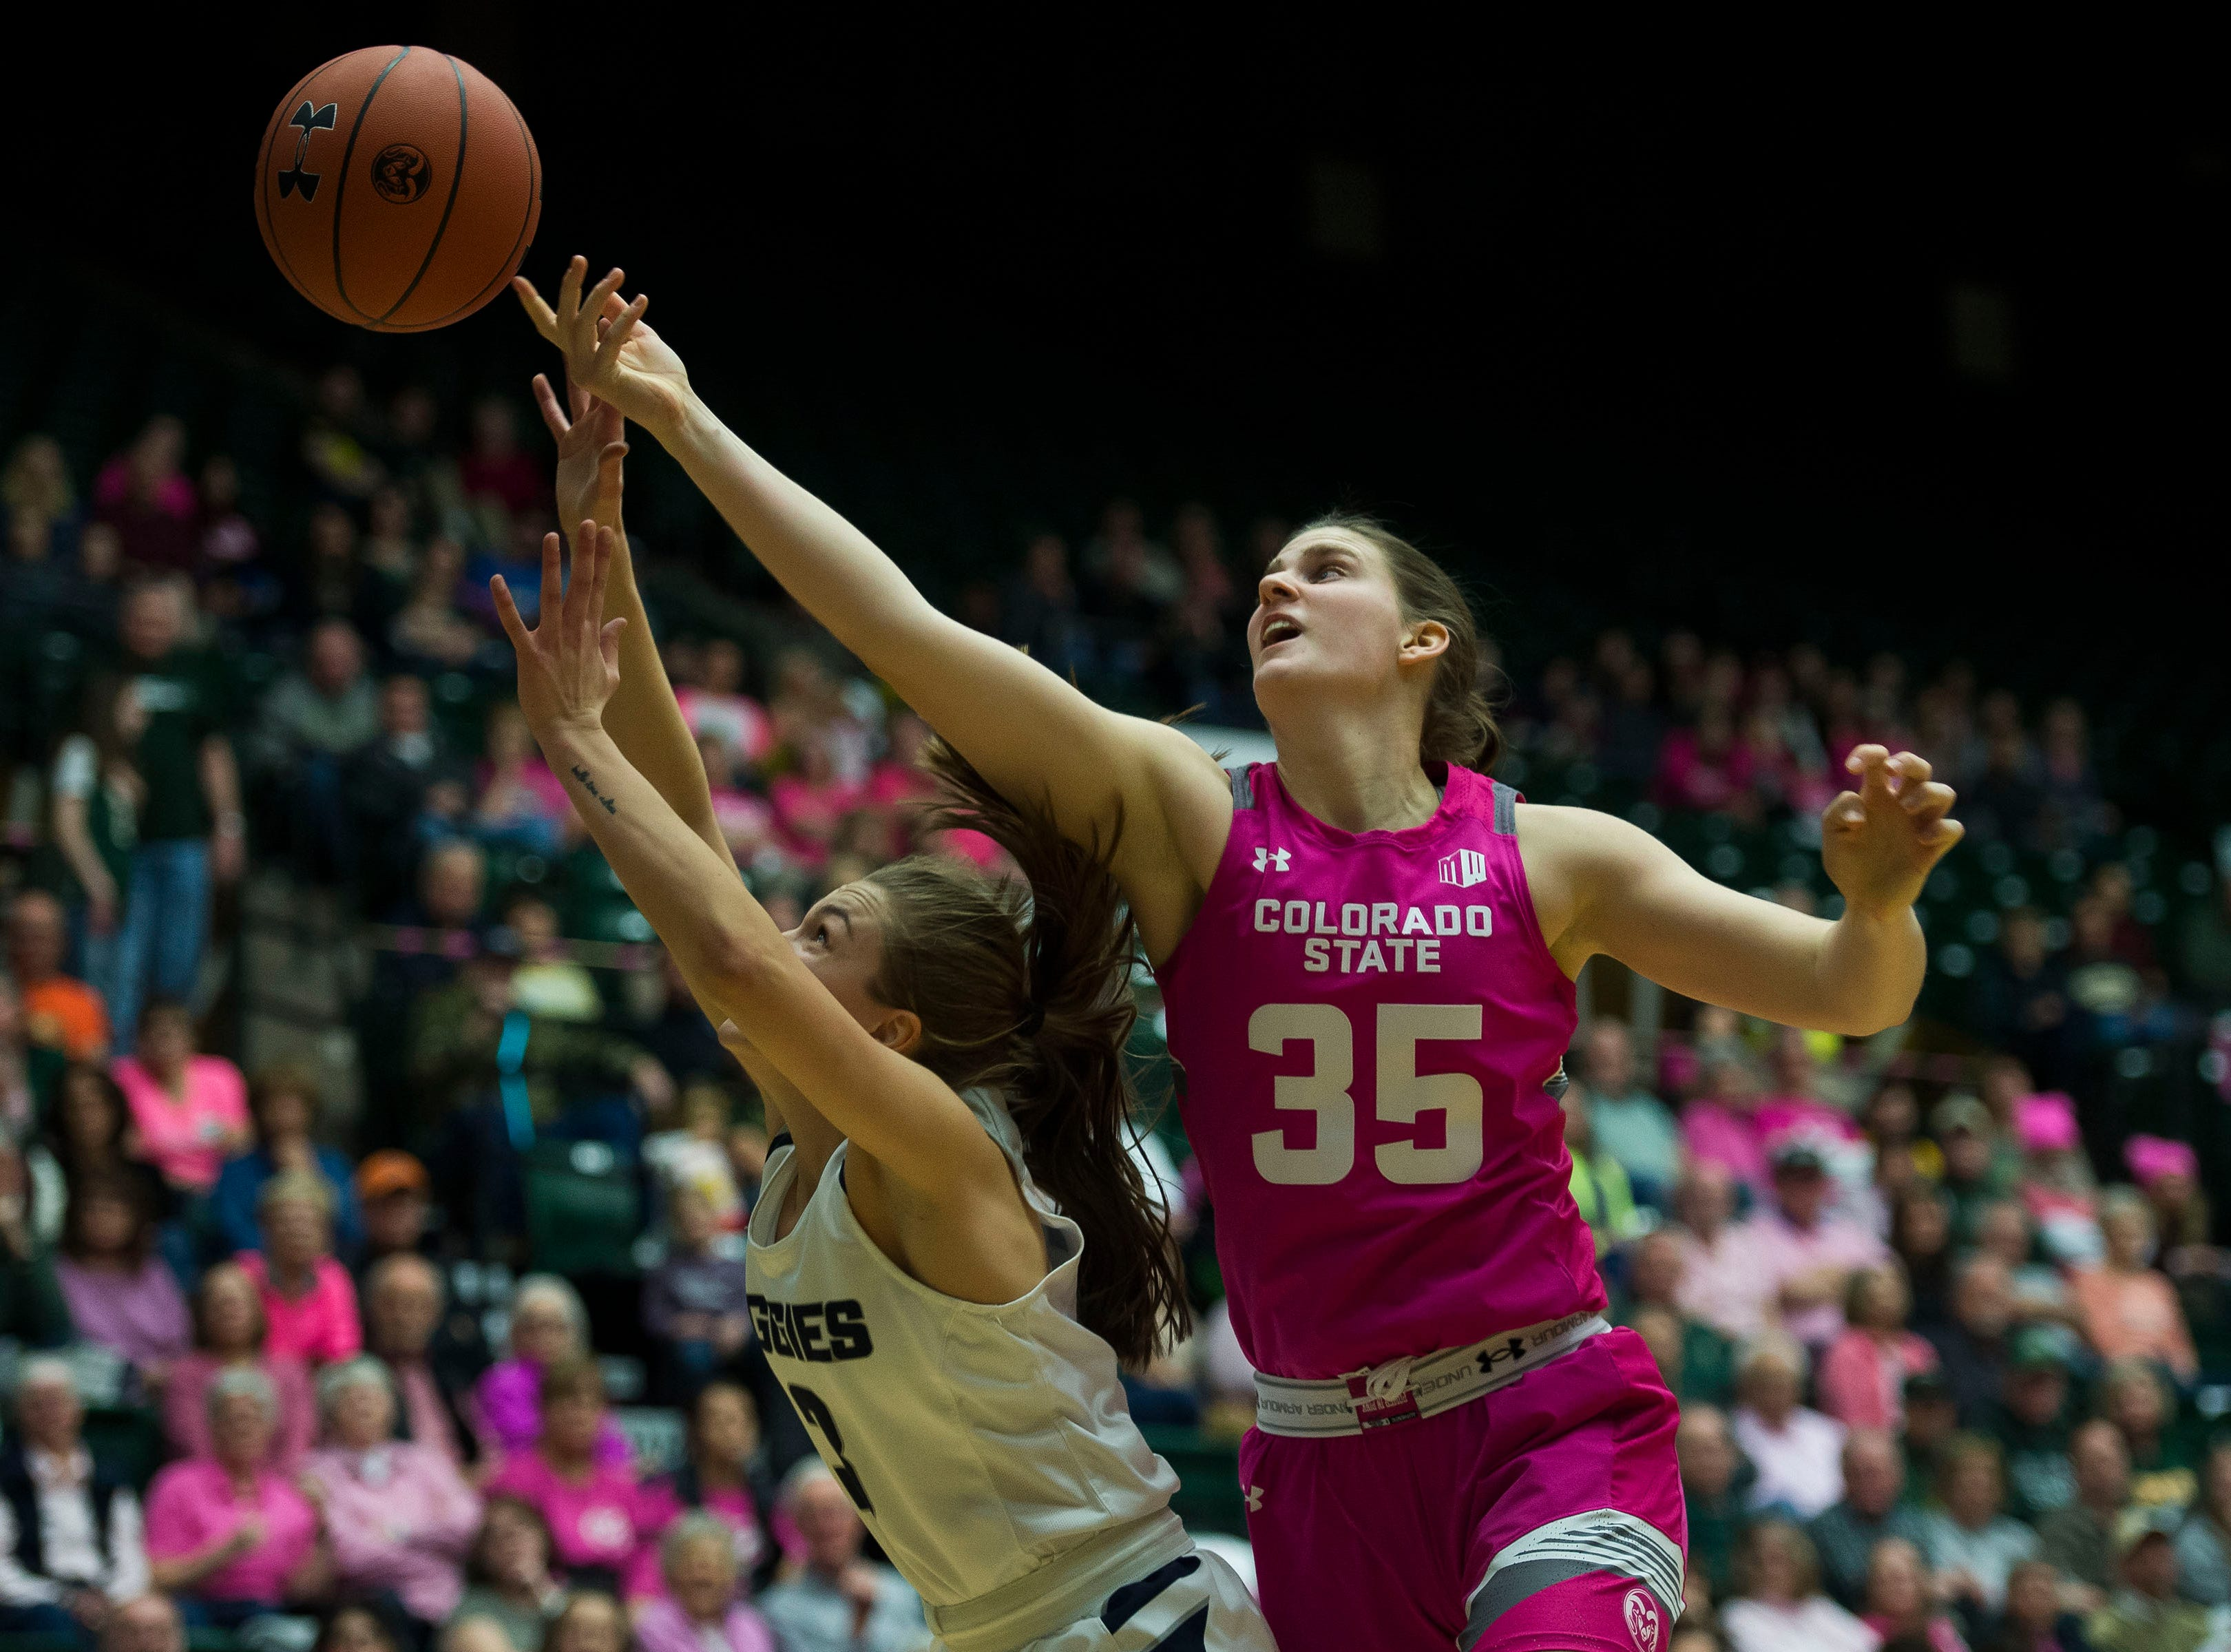 Colorado State University sophomore guard Lore Davis (35) attempts to put a layup over Utah State senior guard Olivia West (3) on Saturday, Jan. 19, 2019, at Moby Arena in Fort Collins, Colo.